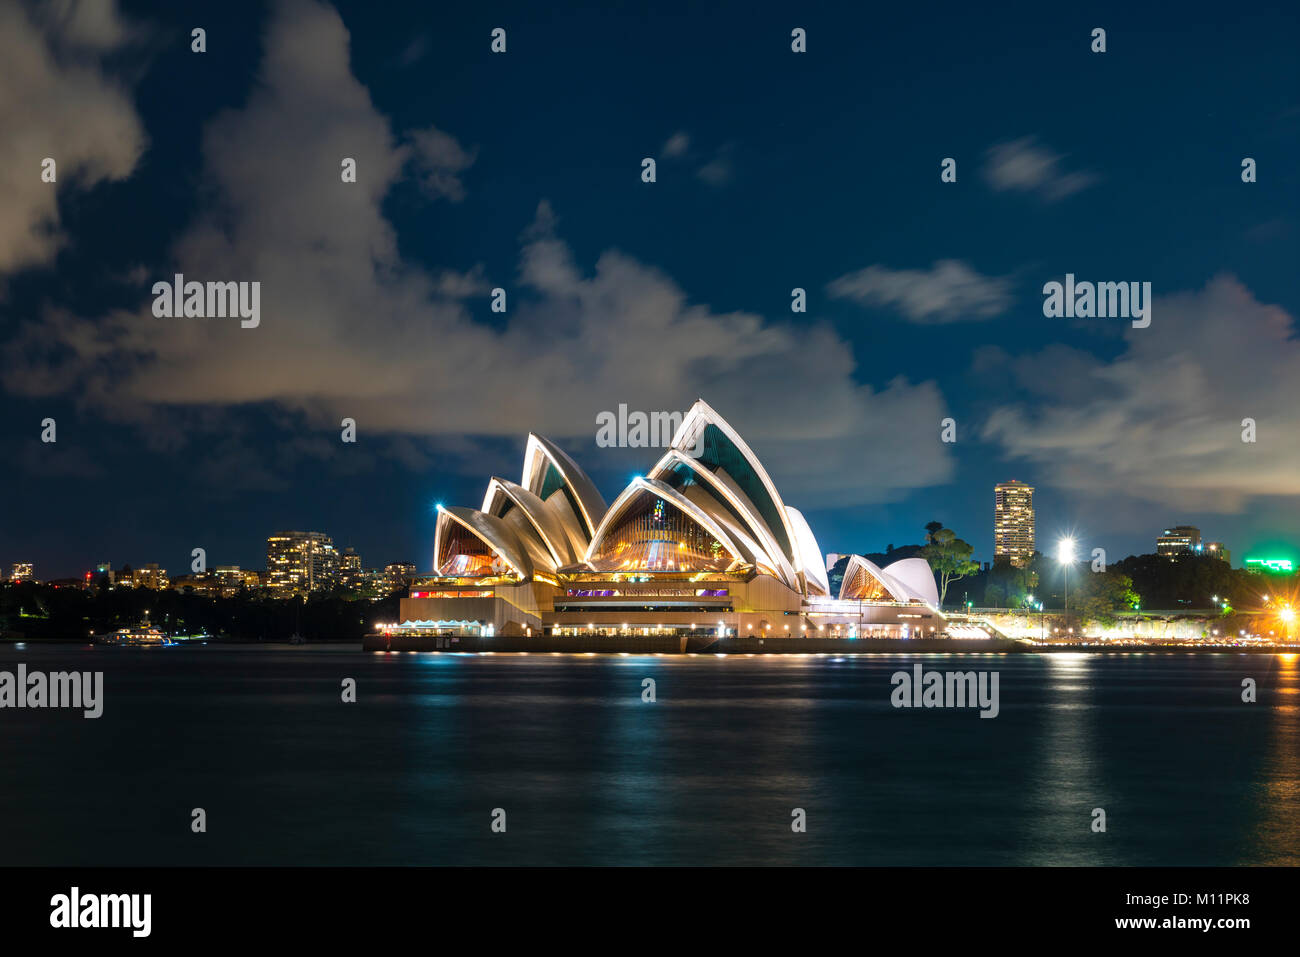 Sydney Opera House at night - Stock Image